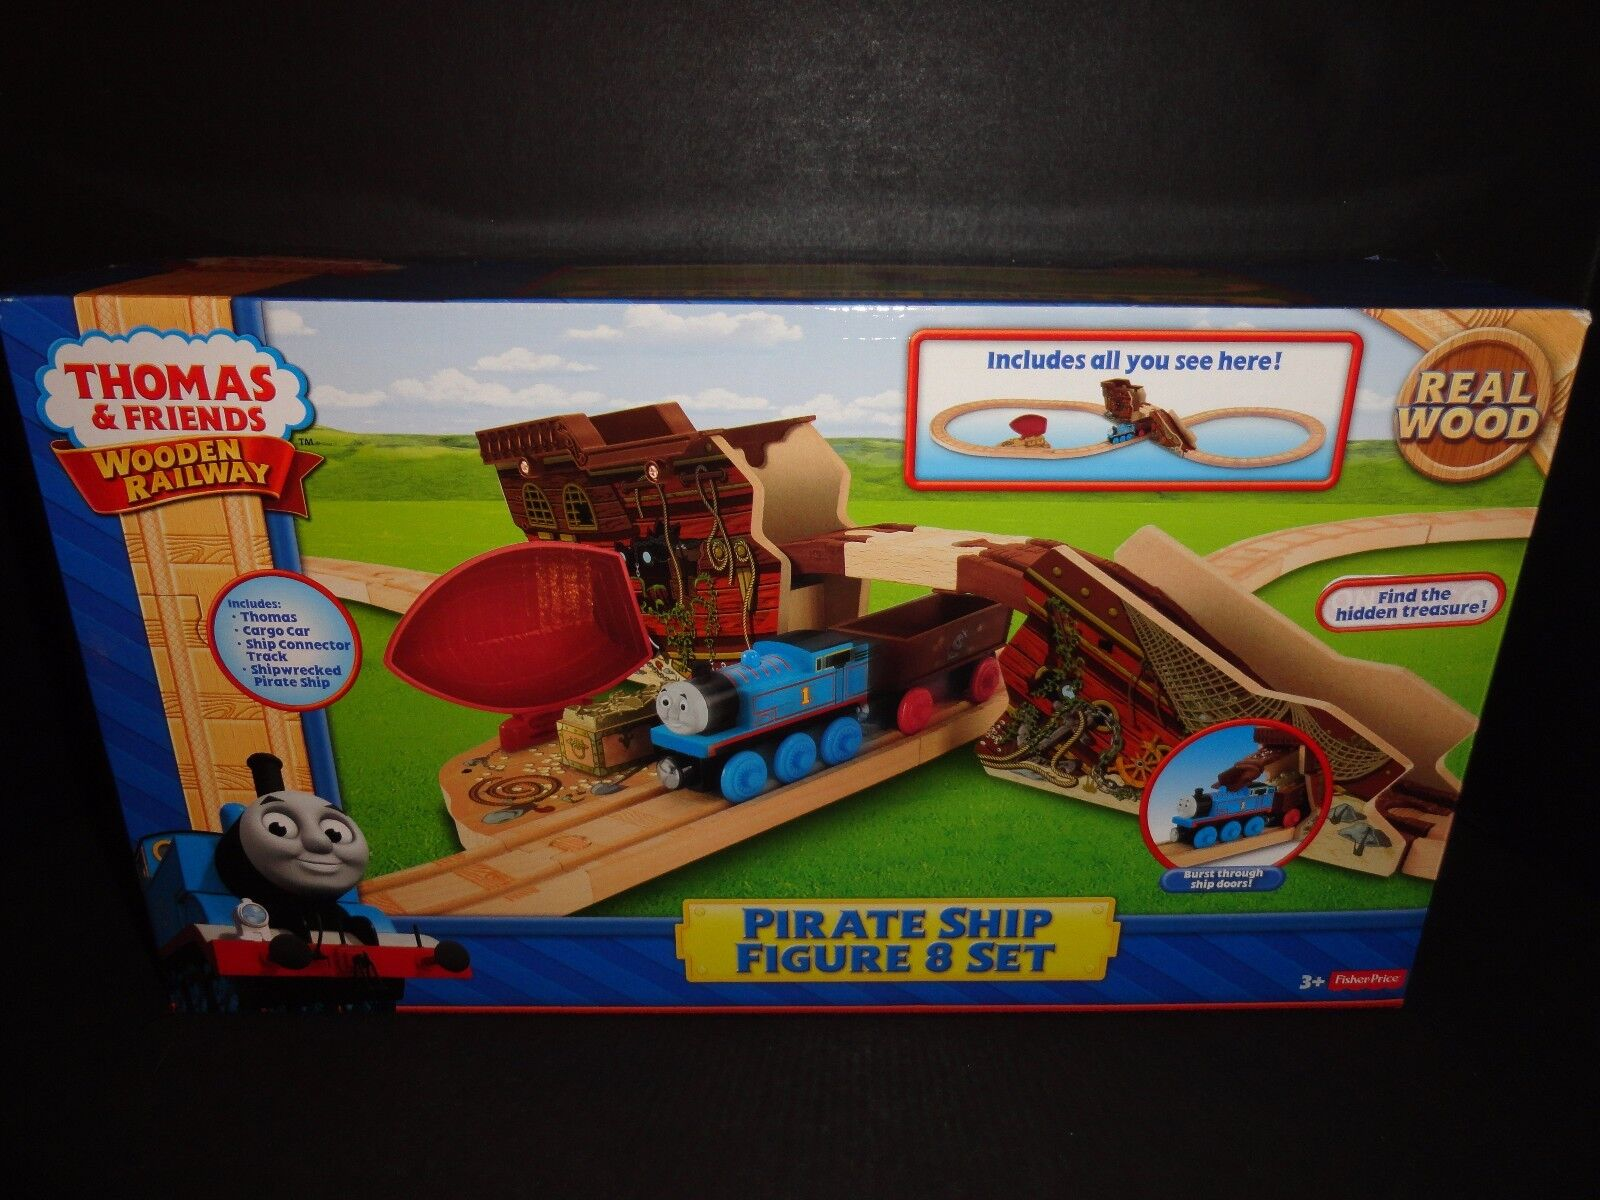 THOMAS AND FRIENDS WOODEN RAILWAY PIRATE SHIP FIGURE 8 SET  NEW